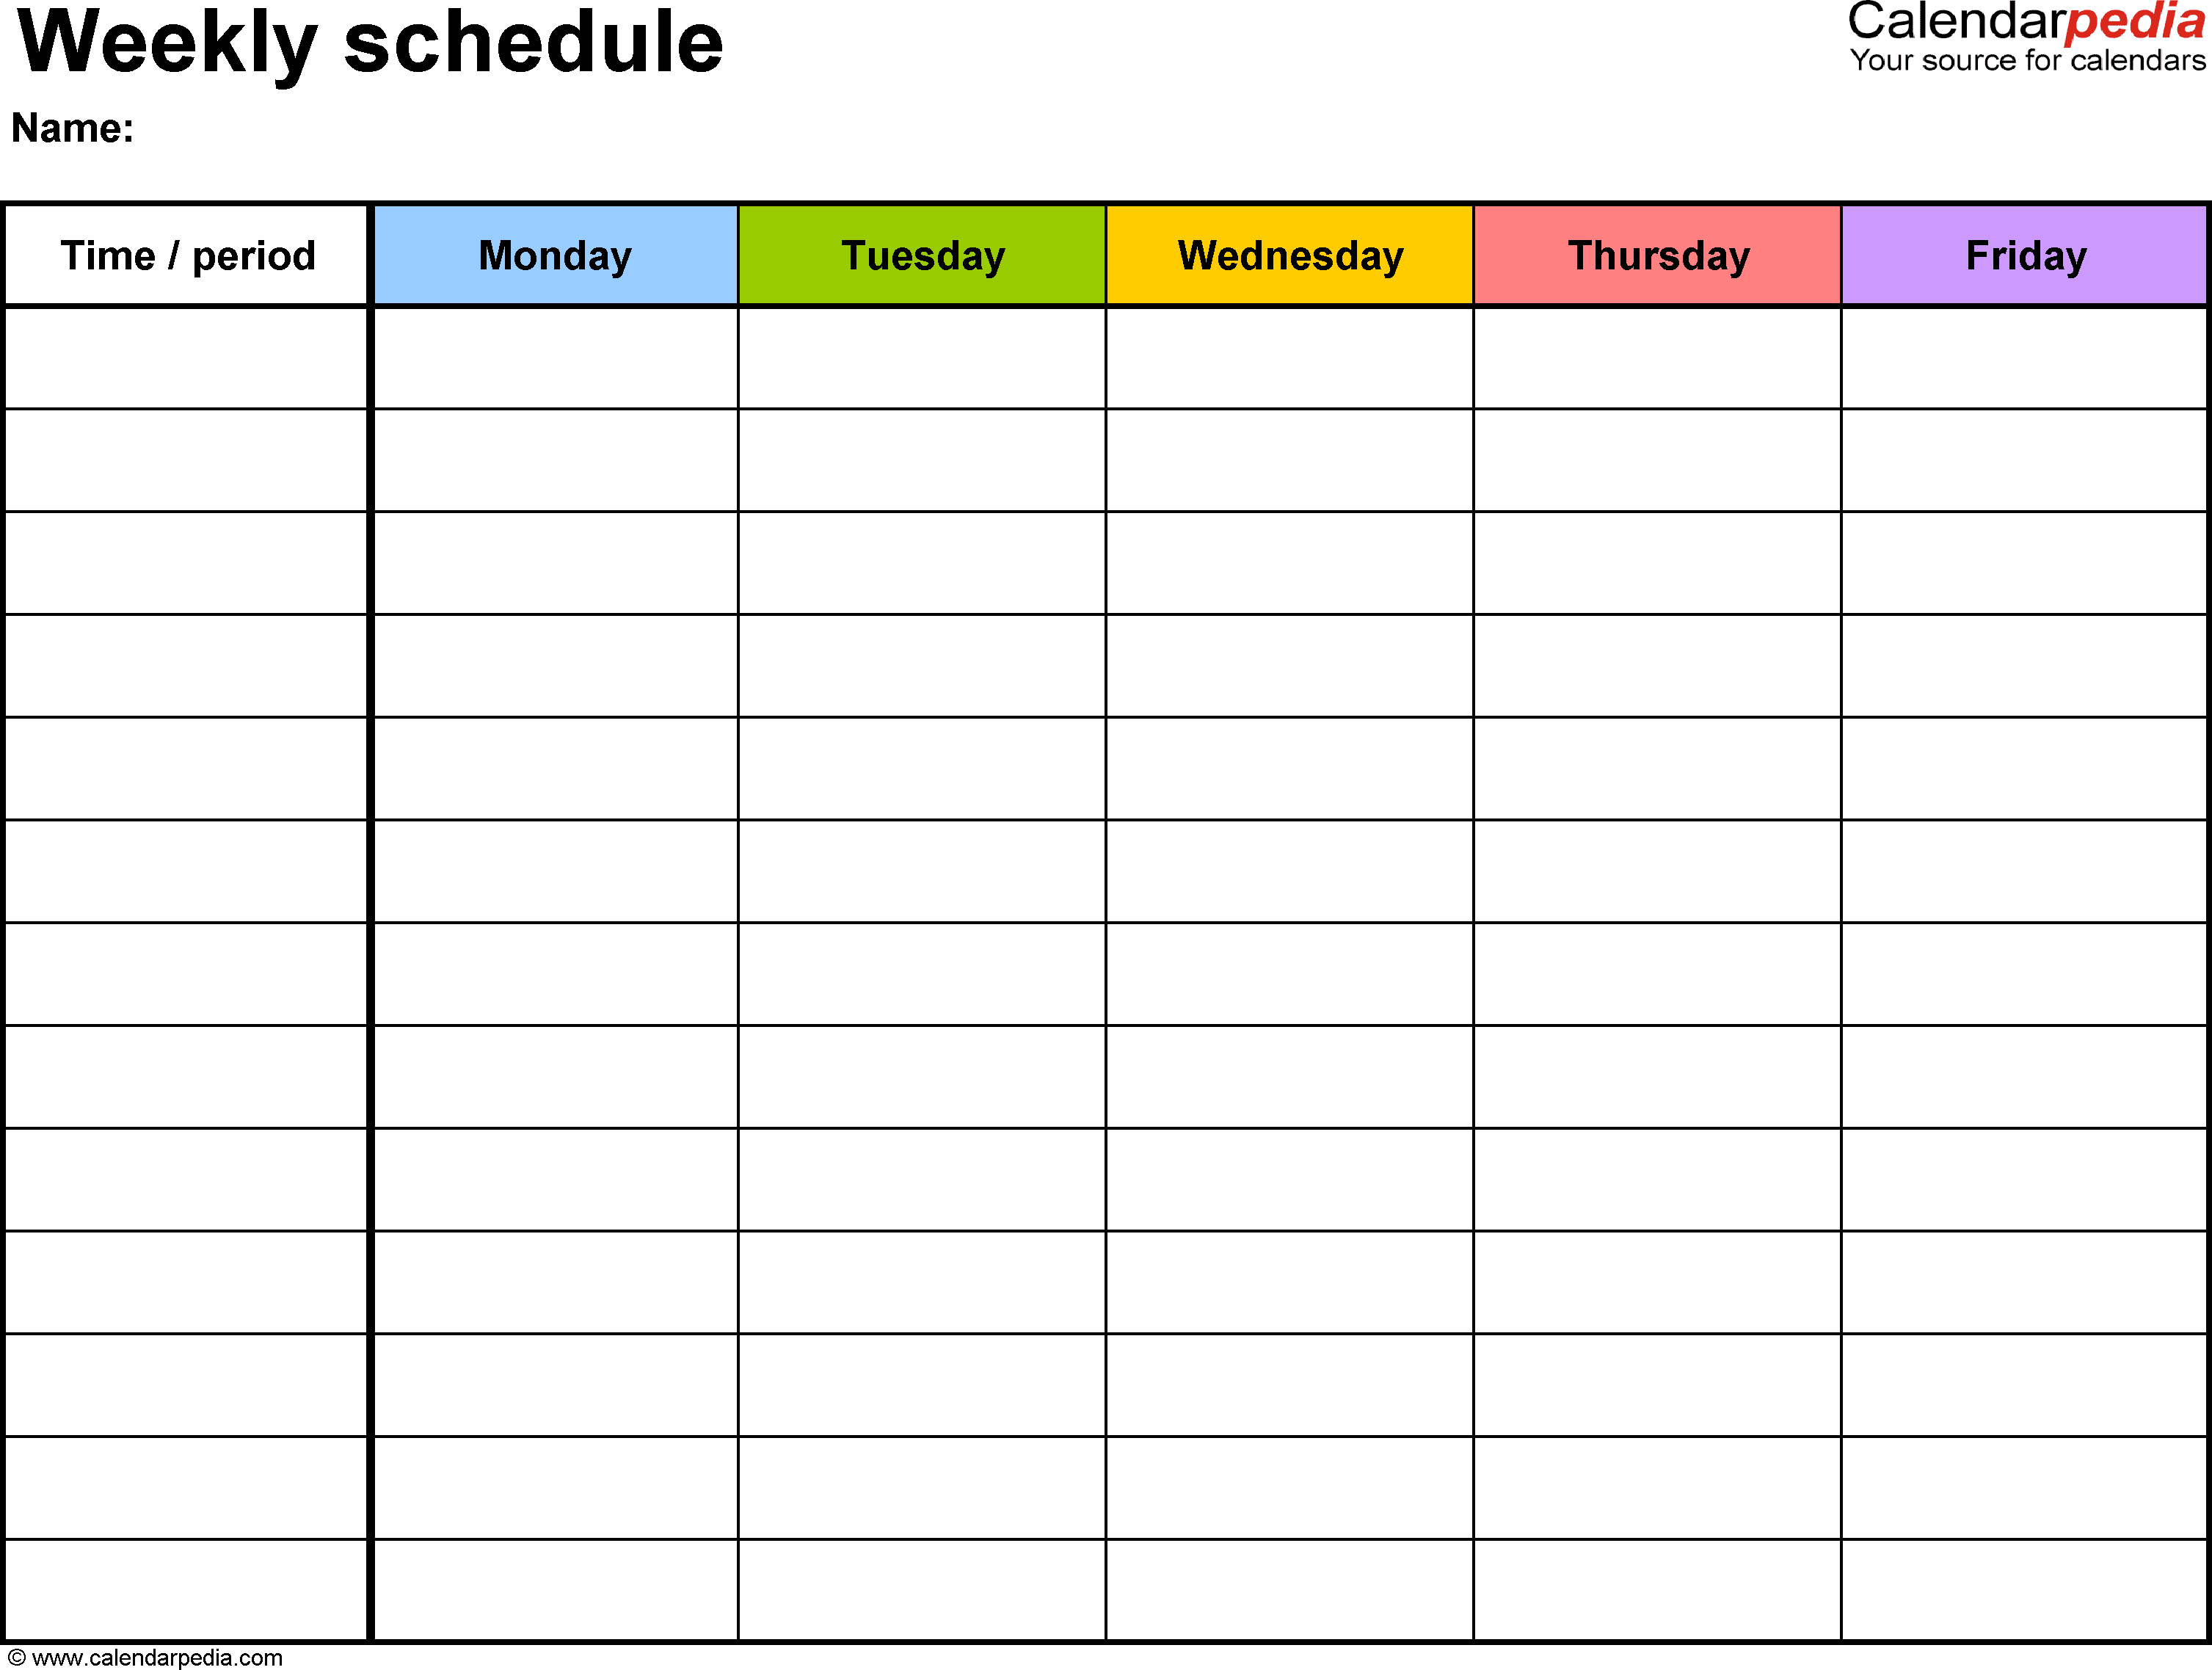 Free Weekly Schedule Templates For Excel - 18 Templates with Daily Planner Template Printable Free